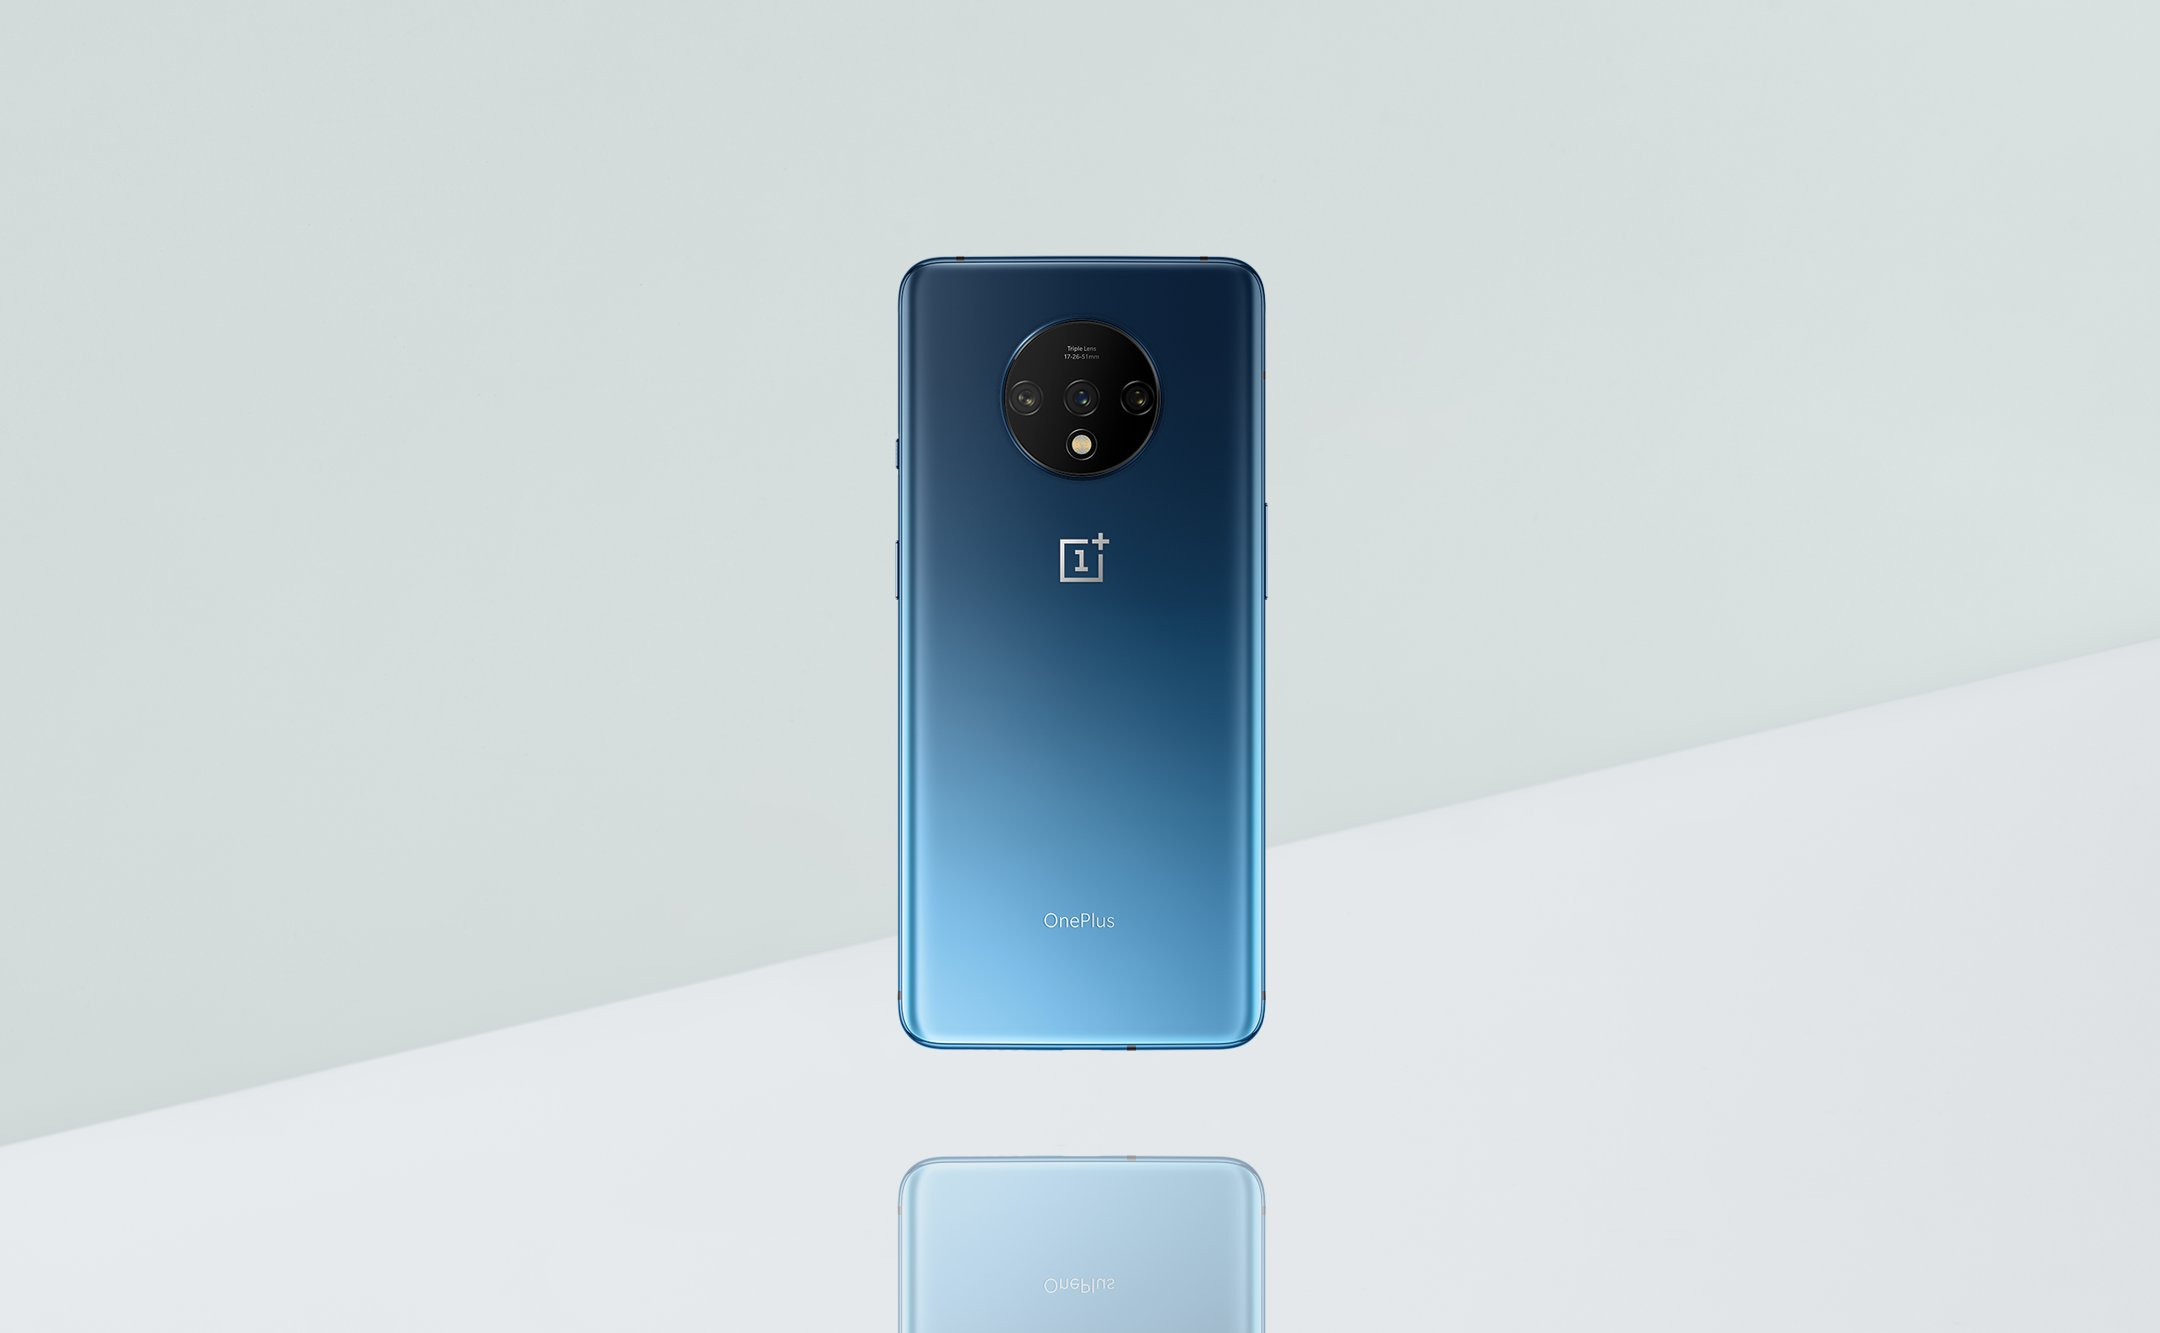 OnePlus 7T to be priced at Rs 39,999?